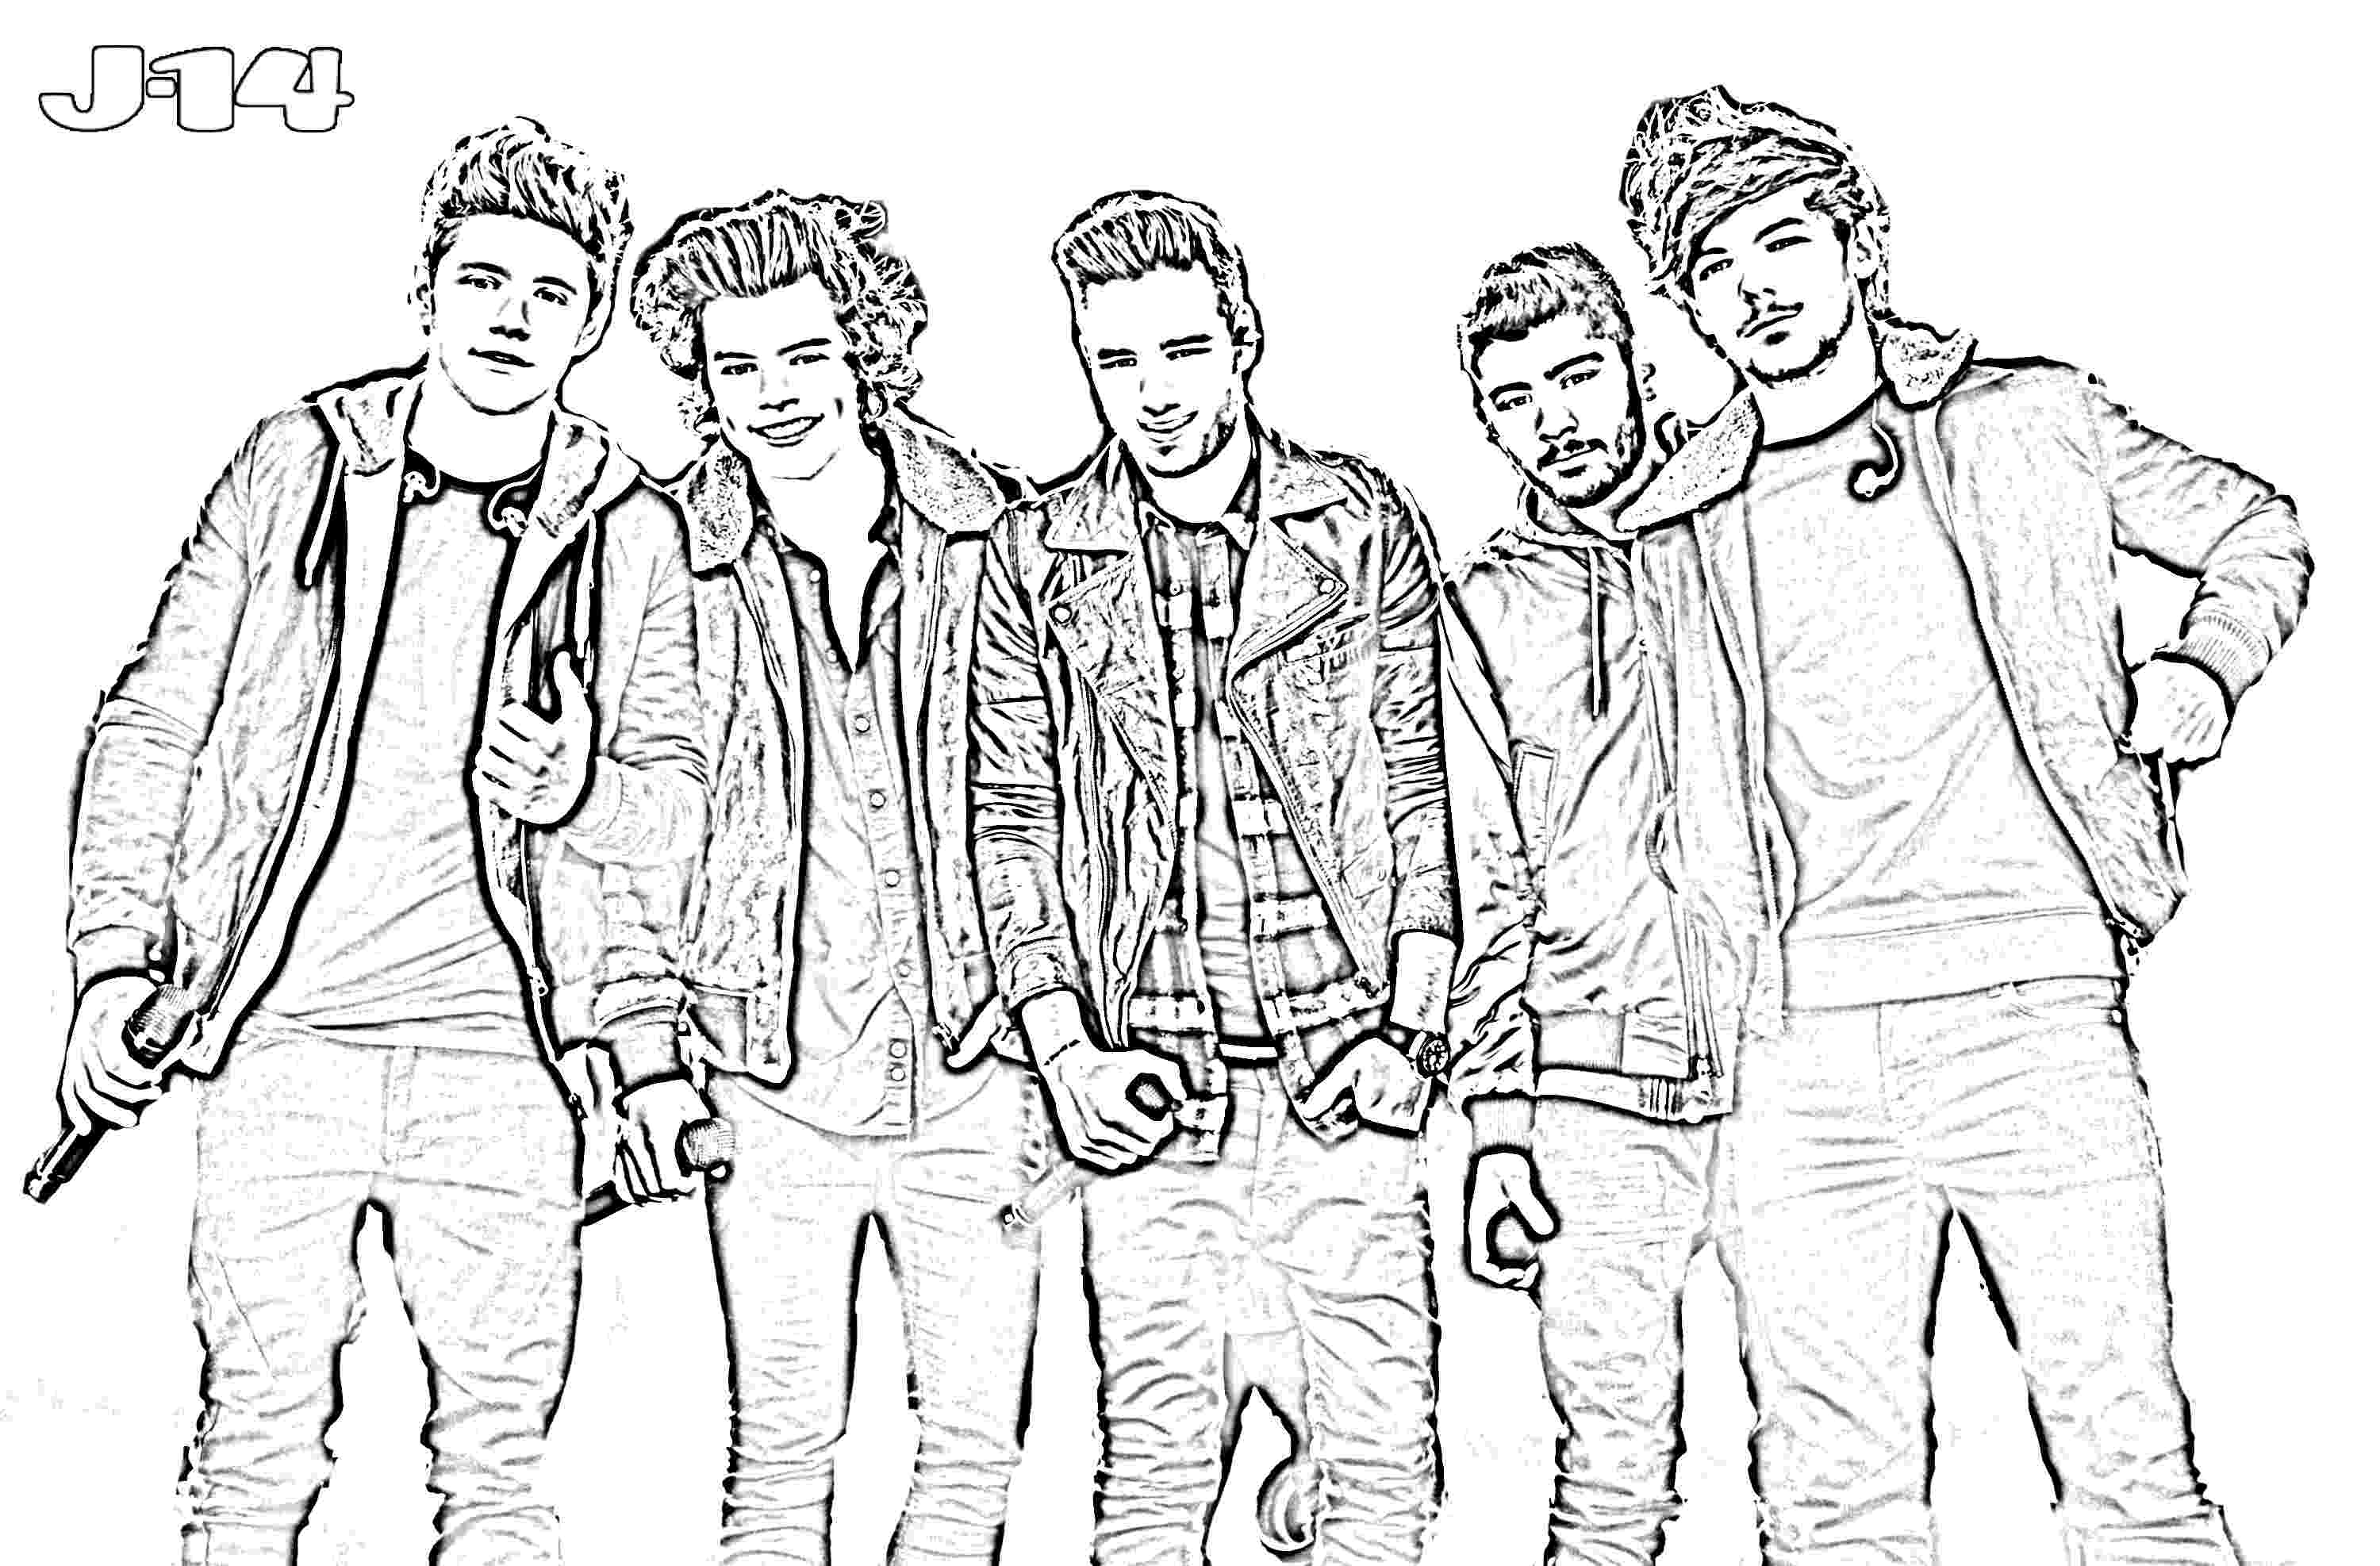 colouring pages for one direction 1d coloring pages one direction coloring pages coloring colouring direction for one pages